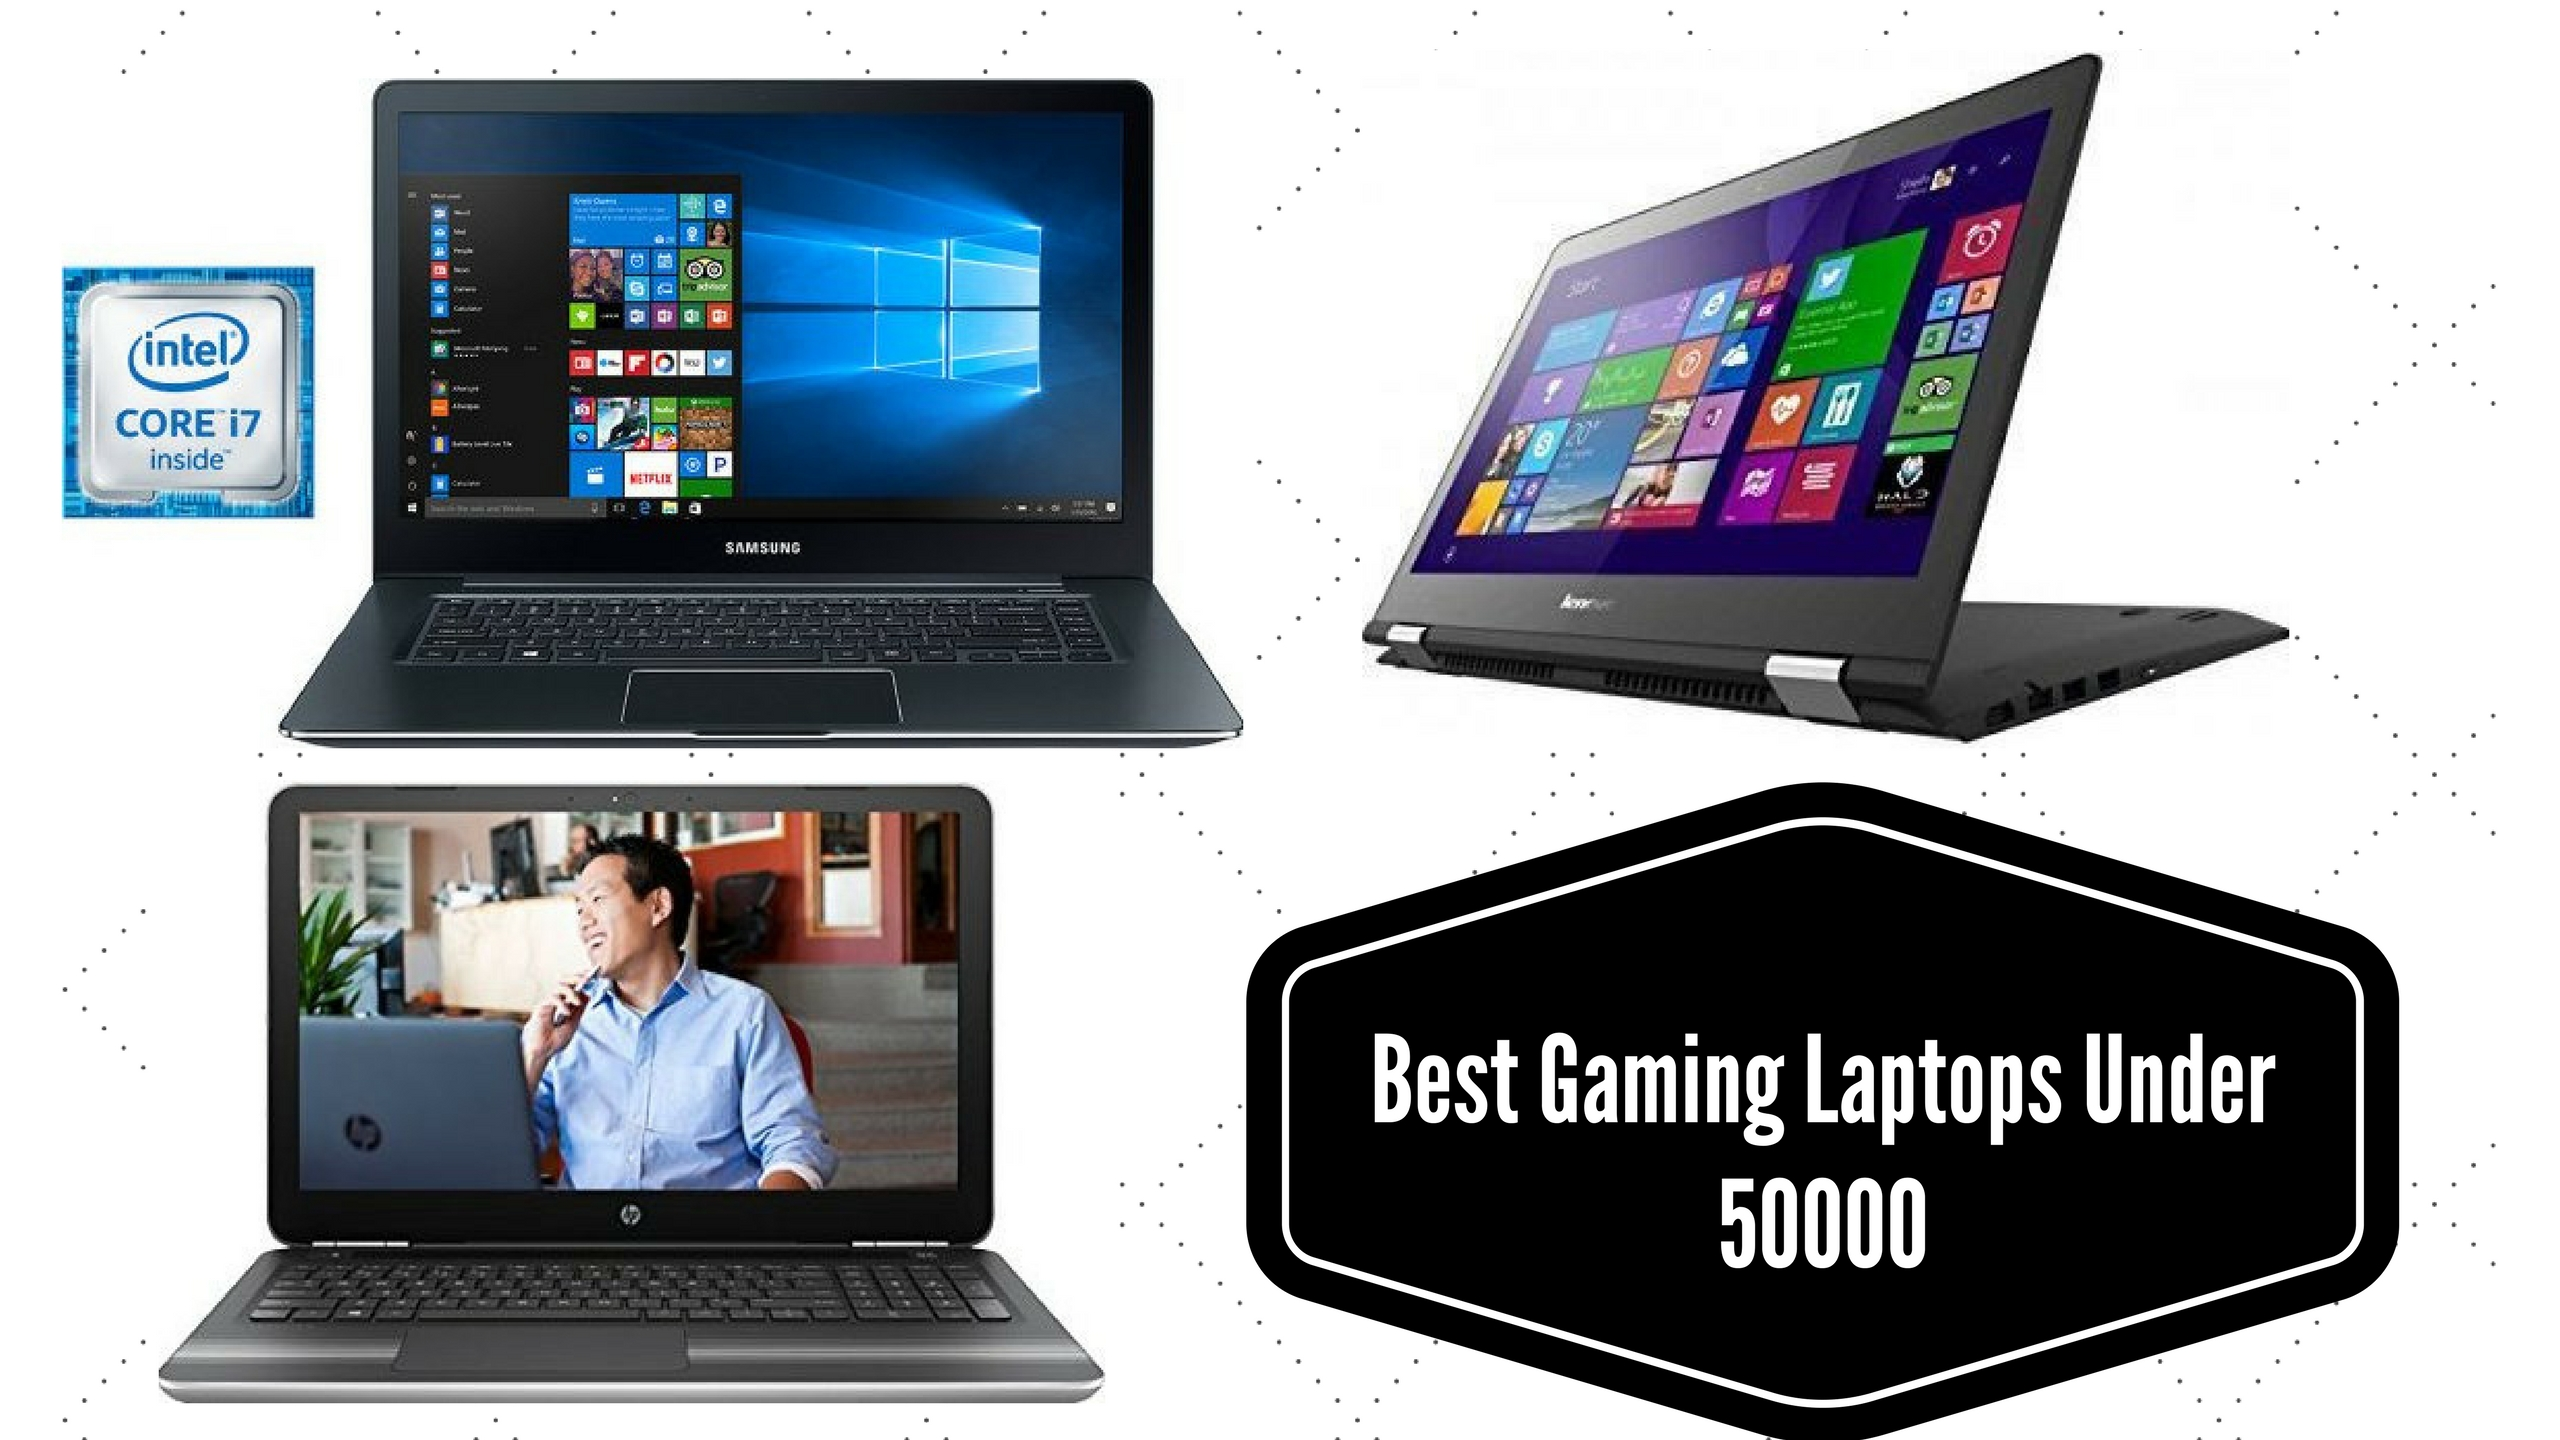 Top 10 Best Laptops Under 50000 In India Reviews Comparison & Price List 2018